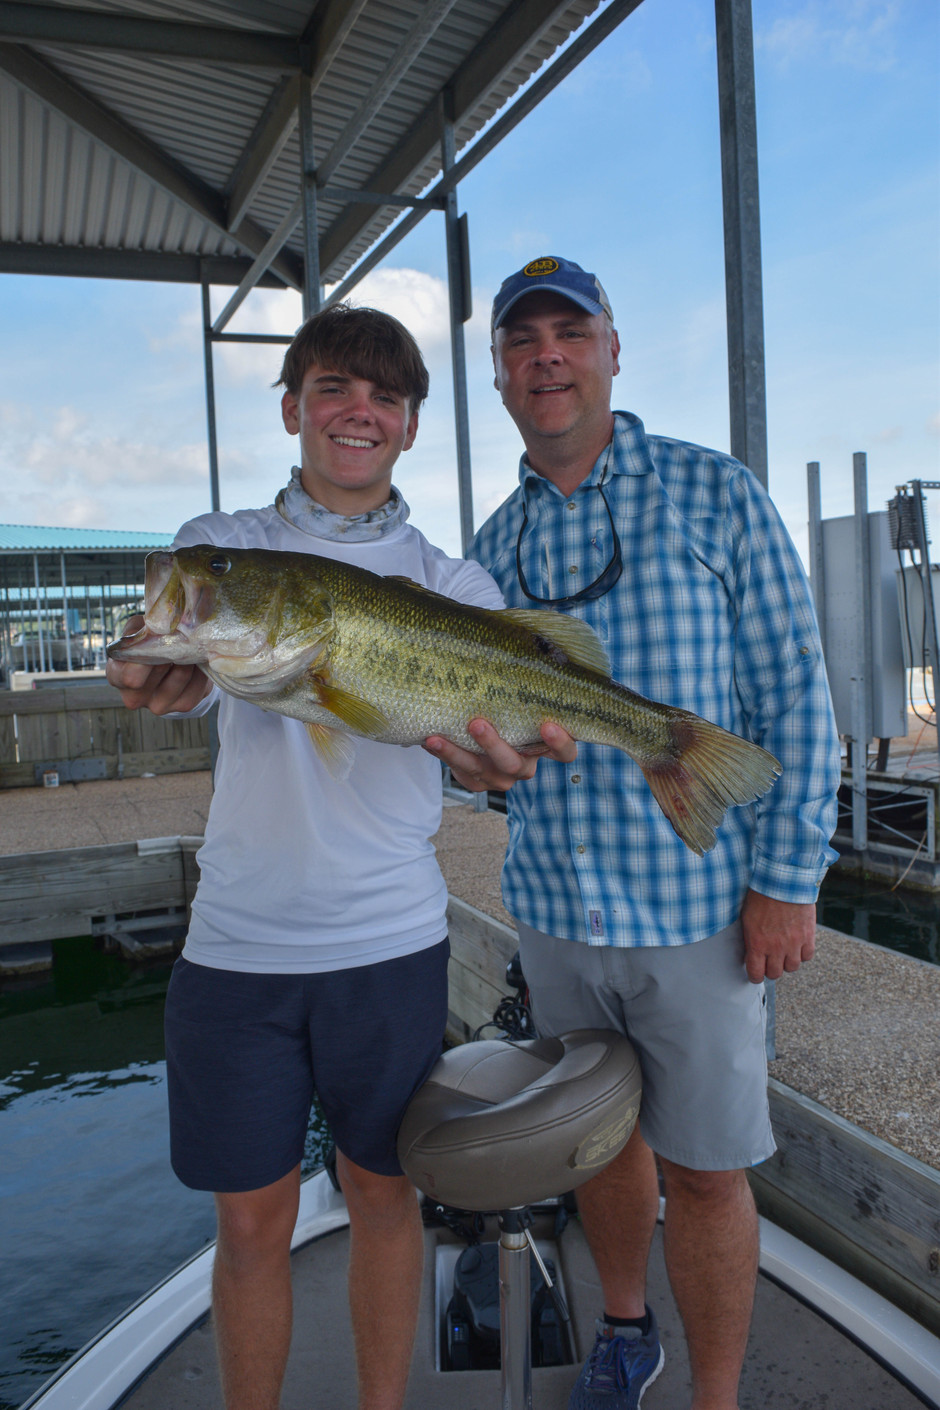 August 10th, Lake Travis Fishing Report (Plus Striper and Decker update)